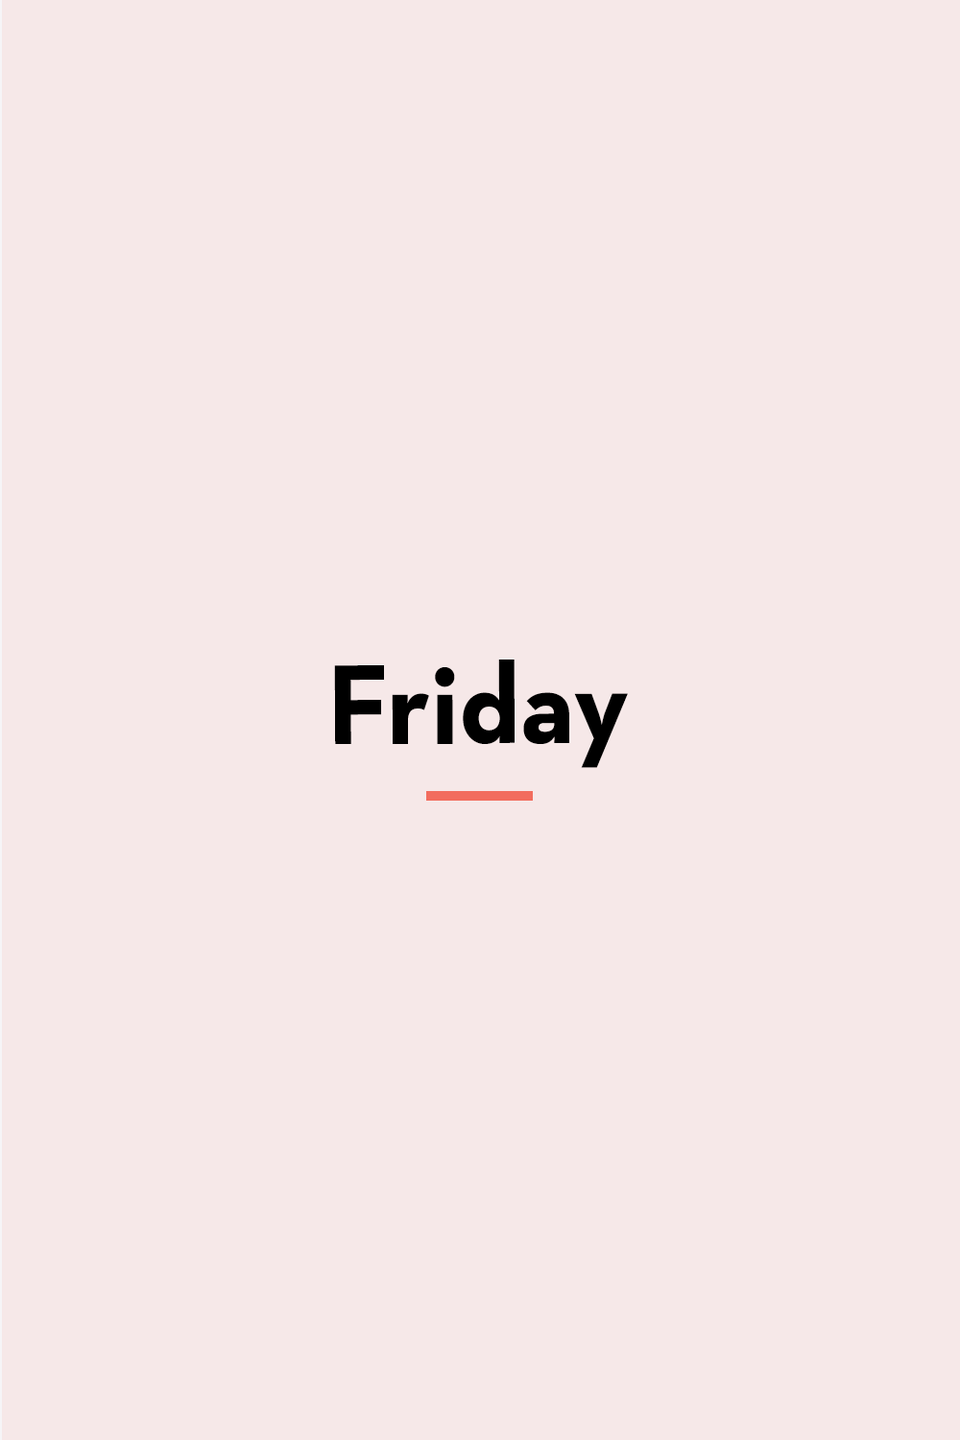 "<p>Who doesn't love Friday? Italians, in fact. When parents in the country named their son Venerdi, the Italian word for ""Friday,"" the courts ruled that it fell into the ""ridiculous or shameful"" category of names and ordered it changed. According to NBC news, ""<a href=""http://www.nbcnews.com/id/22326746/ns/world_news-weird_news/t/italian-court-says-baby-cant-be-named-friday/#.XP_LmhJKg2I"" rel=""nofollow noopener"" target=""_blank"" data-ylk=""slk:they ordered the boy to be named Gregorio"" class=""link rapid-noclick-resp"">they ordered the boy to be named Gregorio</a> after the saint on whose day he was born.""</p>"